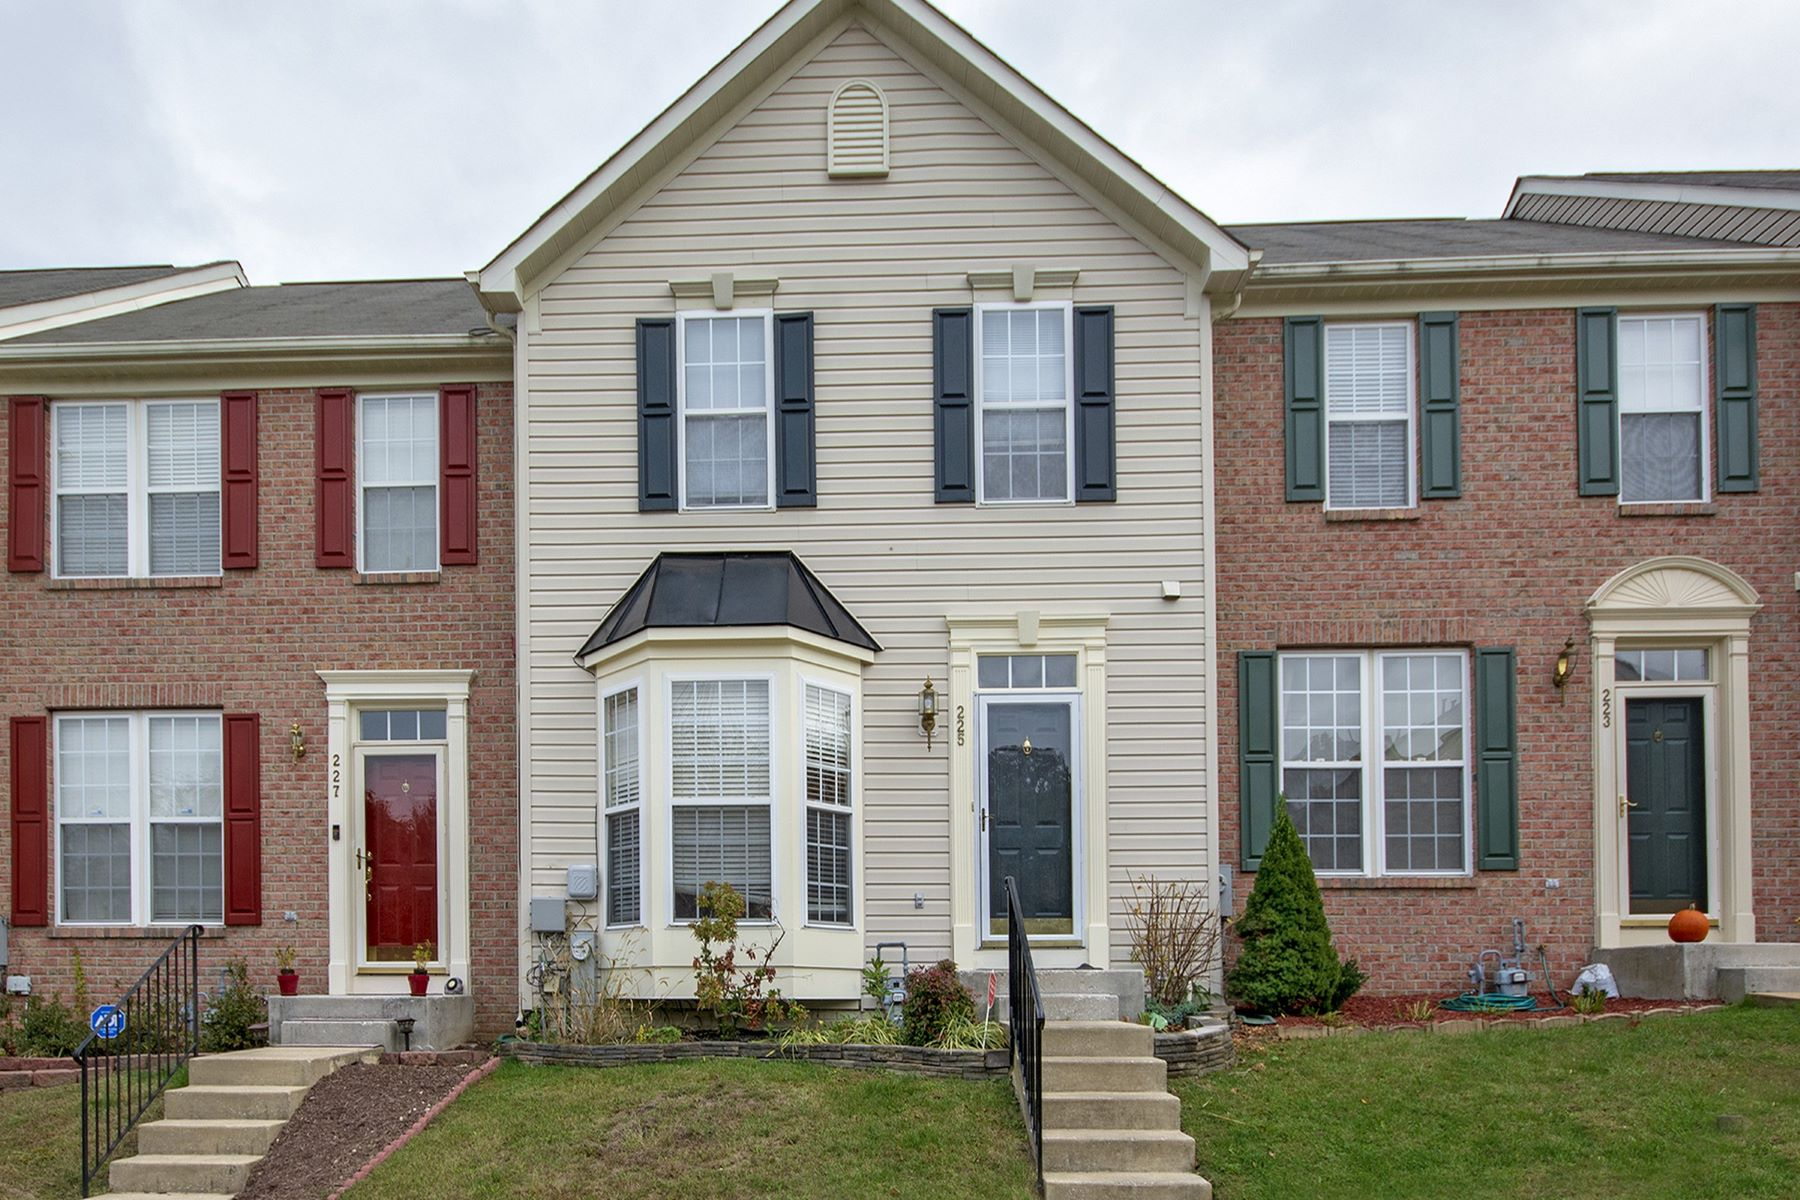 Single Family Homes for Sale at Bright and Airy 225 Isinglass Road Owings Mills, Maryland 21117 United States